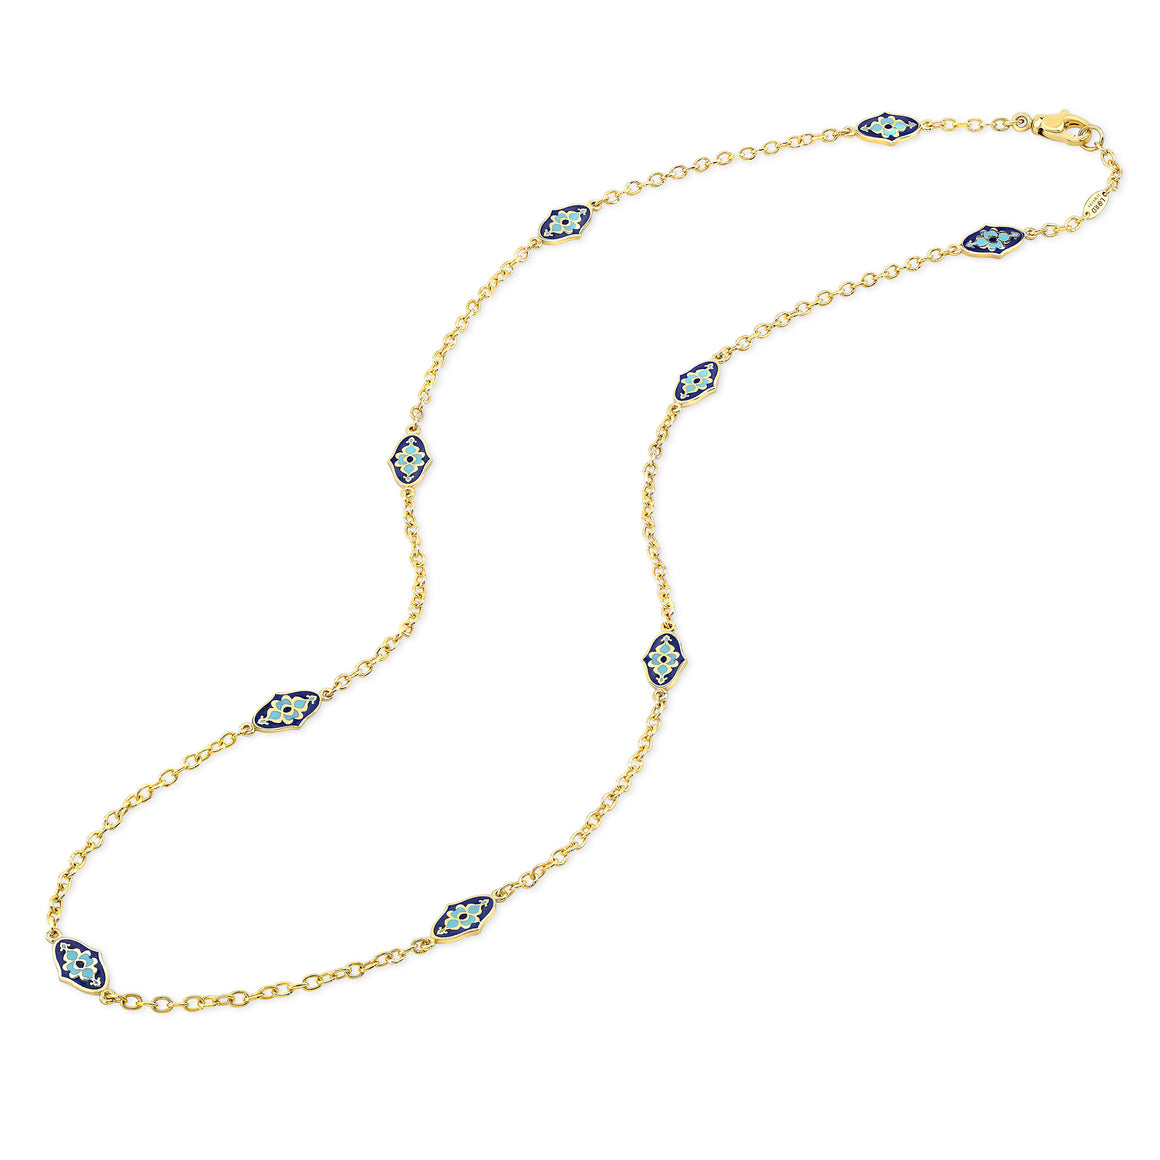 18k Yellow Gold Mosaic Enamel Station Necklace by Lord Jewelry - Talisman Collection